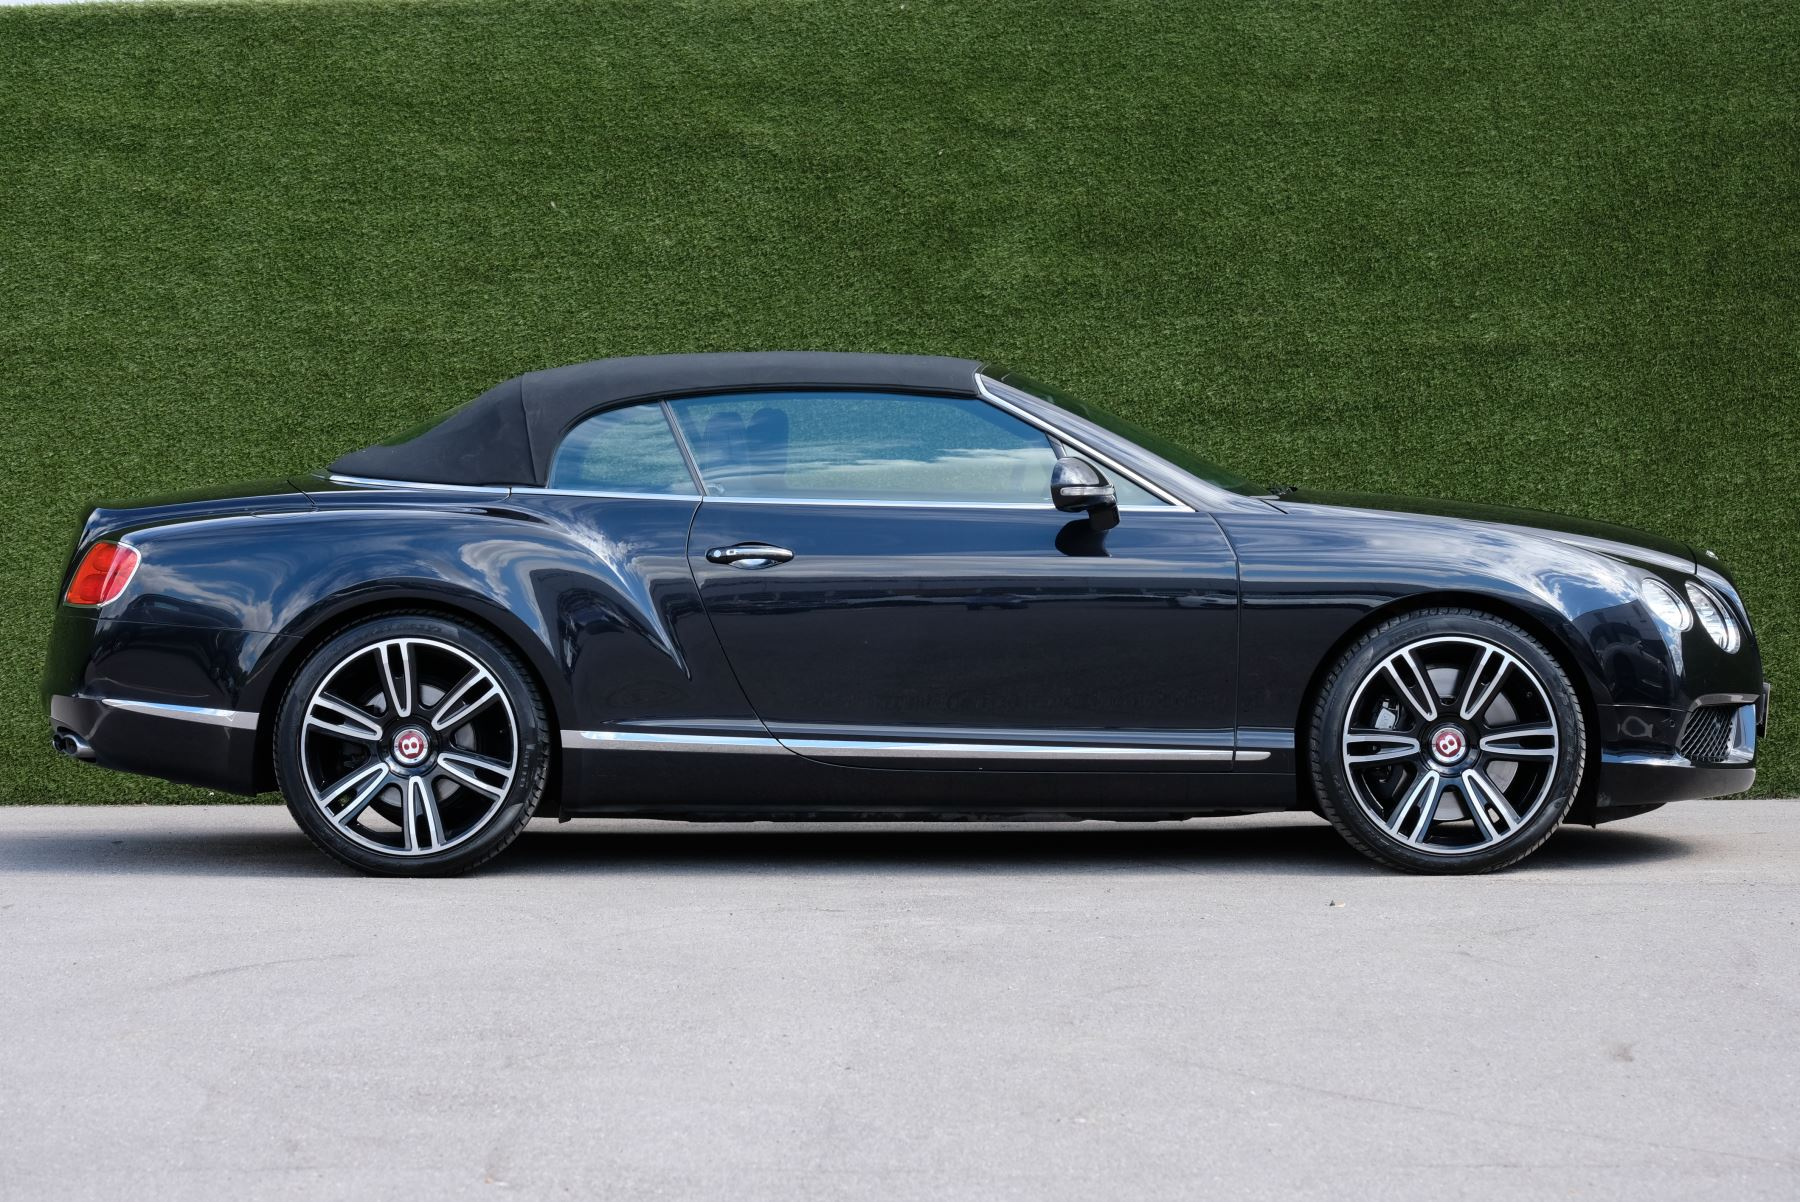 Bentley Continental GTC 4.0 V8 2dr image 5